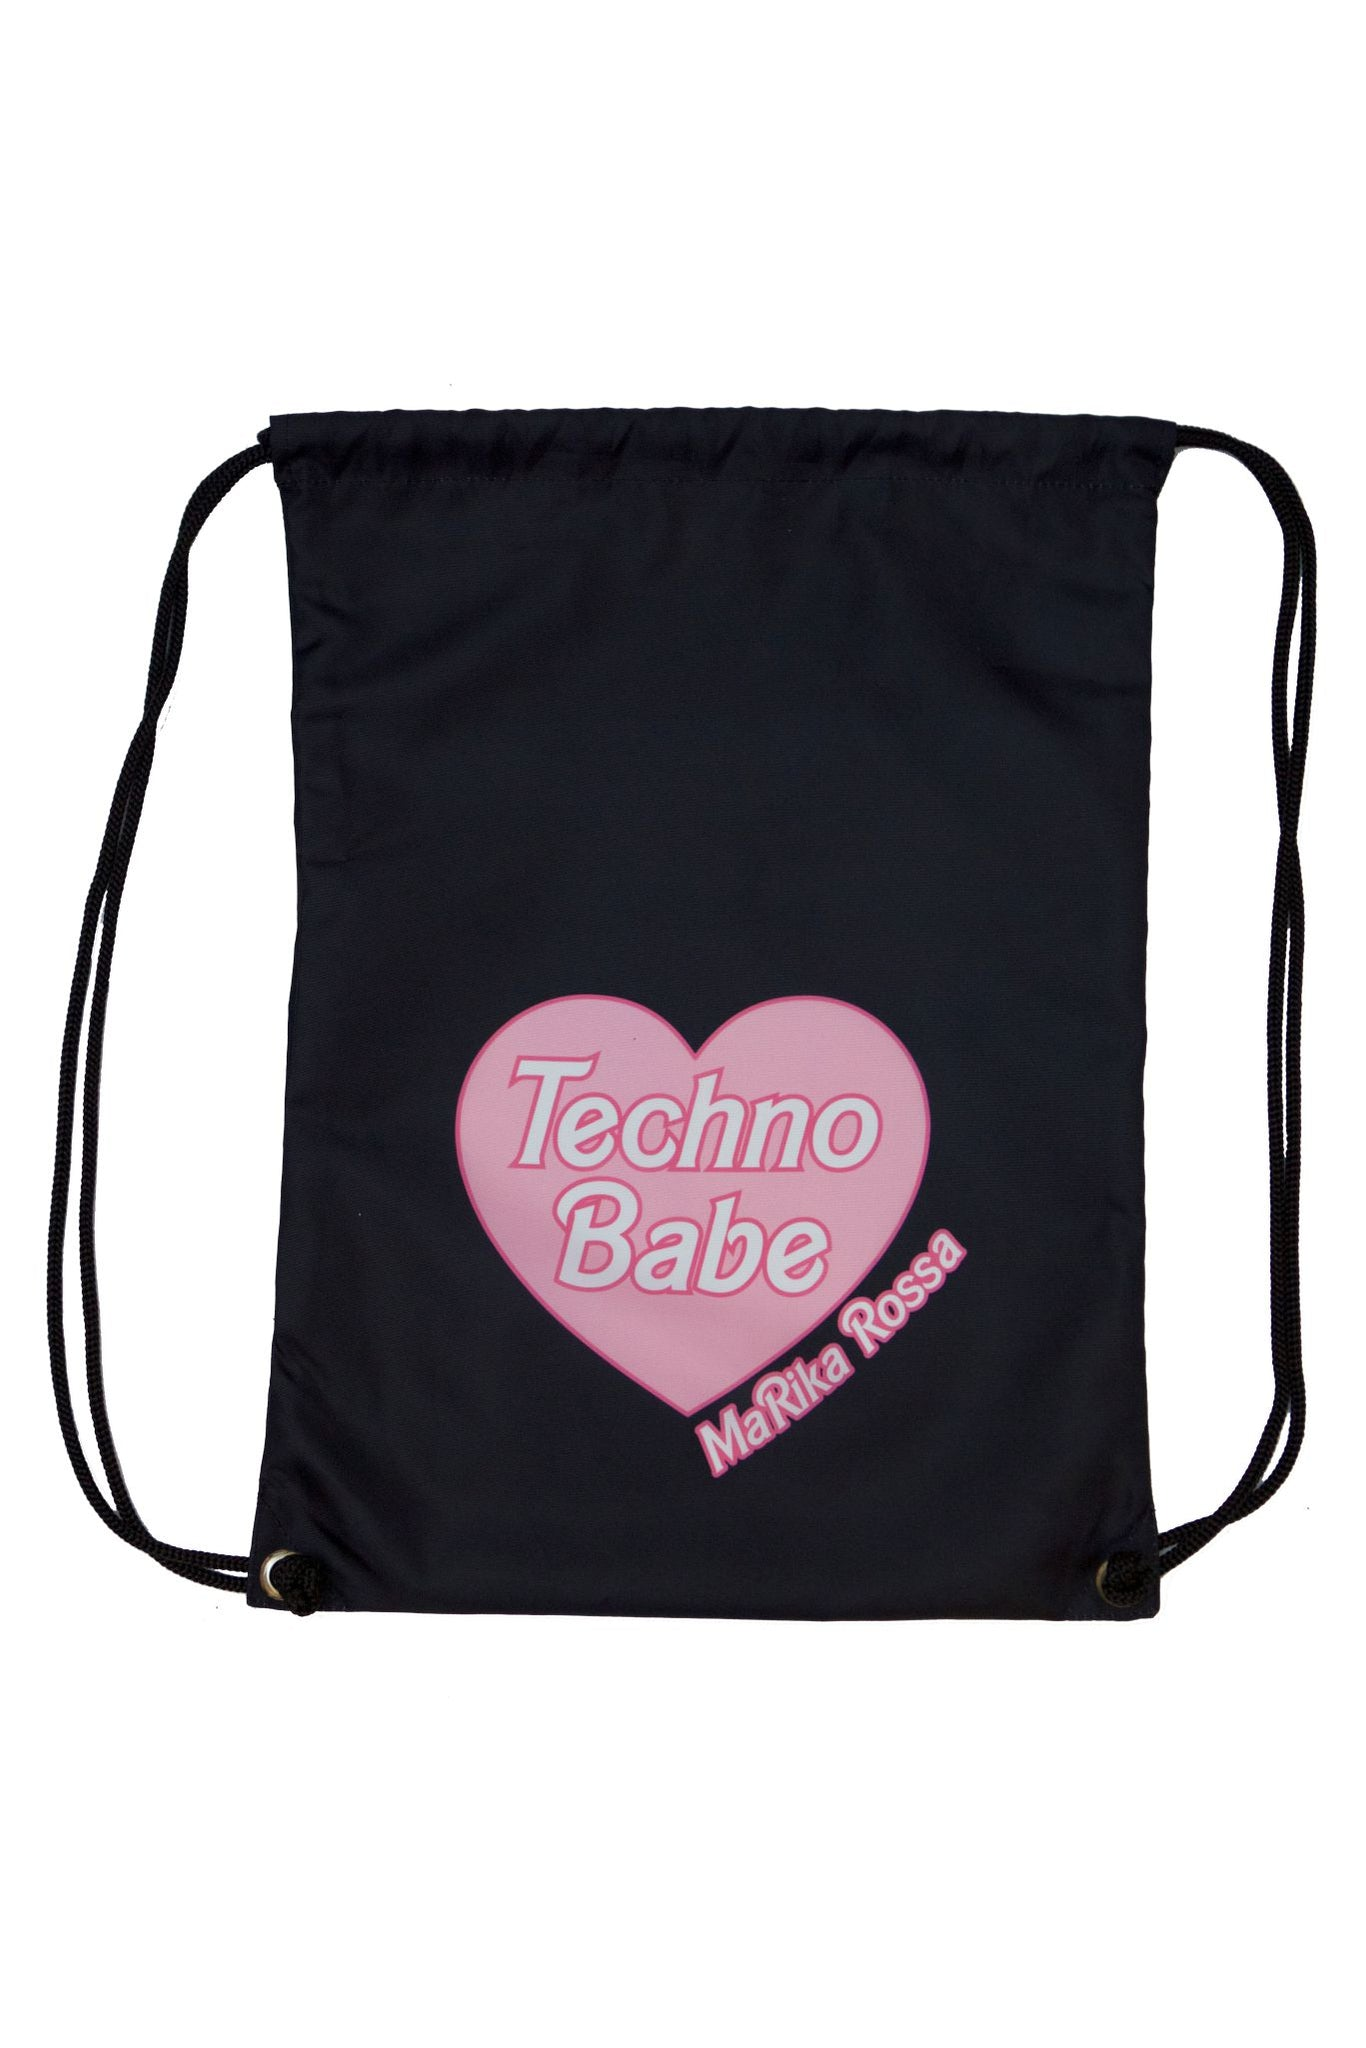 Techno Babe [Black] Backpacks